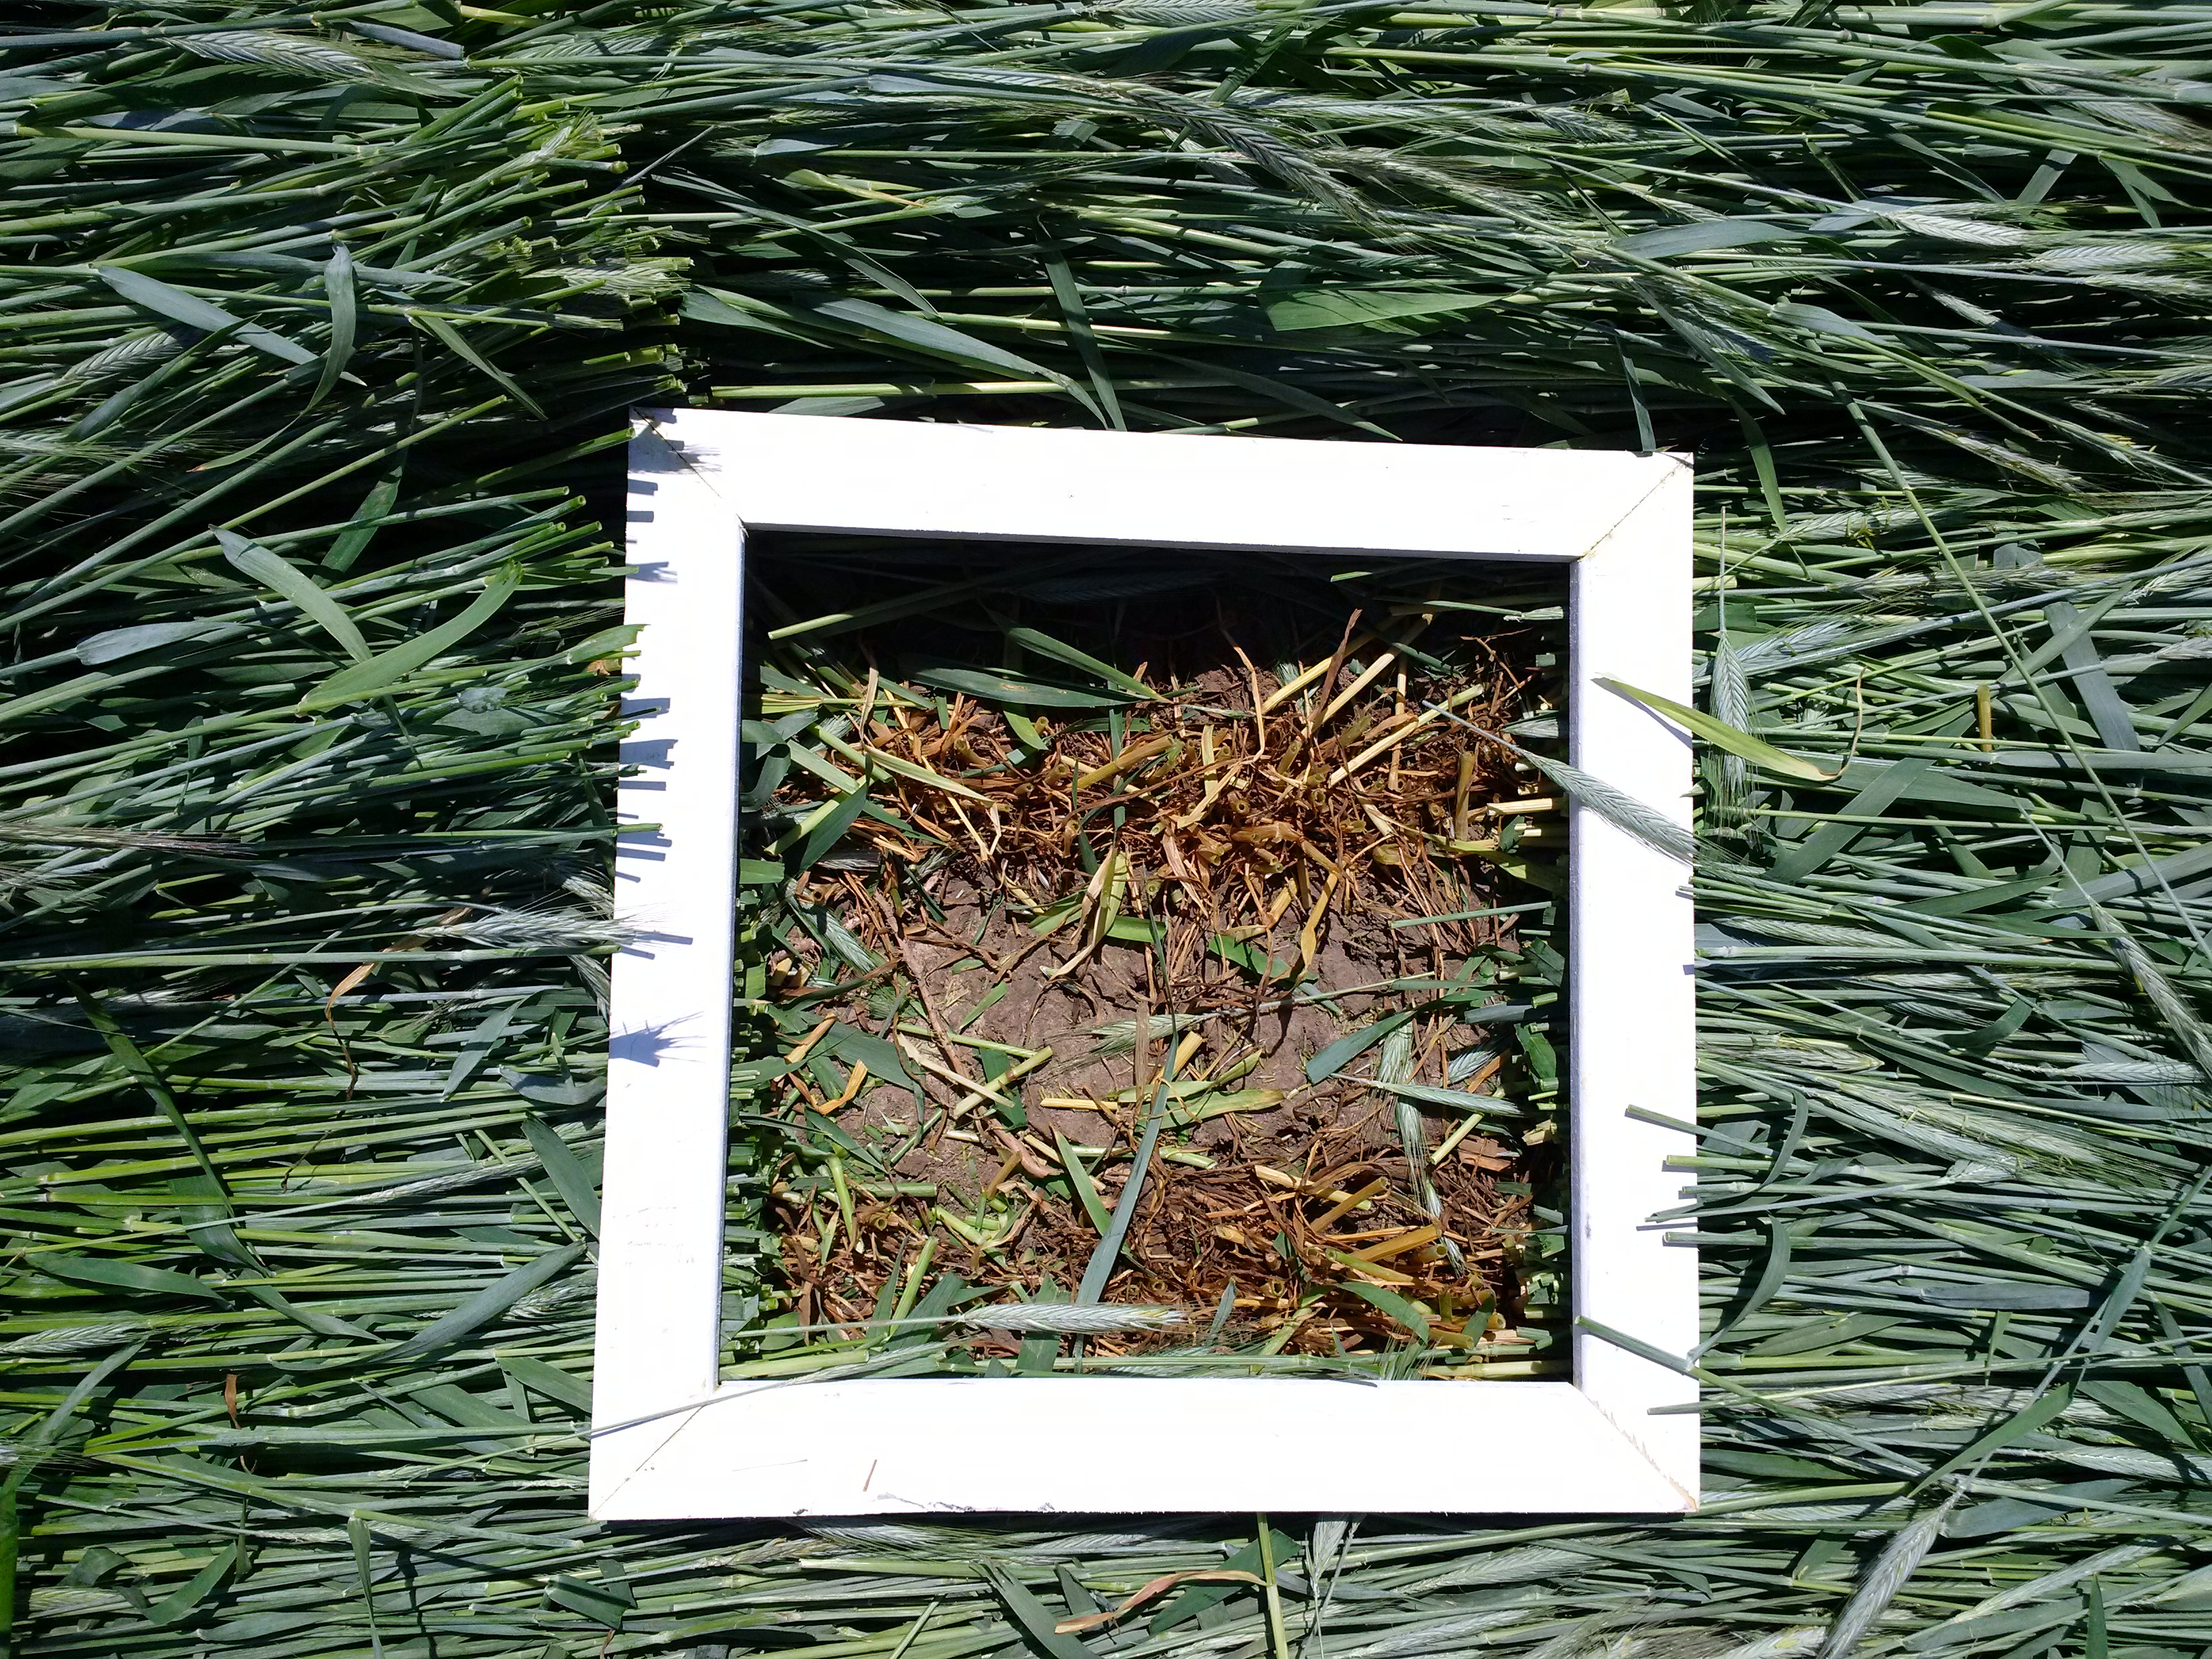 A wooden frame measuring 1 square foot, laid over top of the cereal rye to collect a biomass sample.